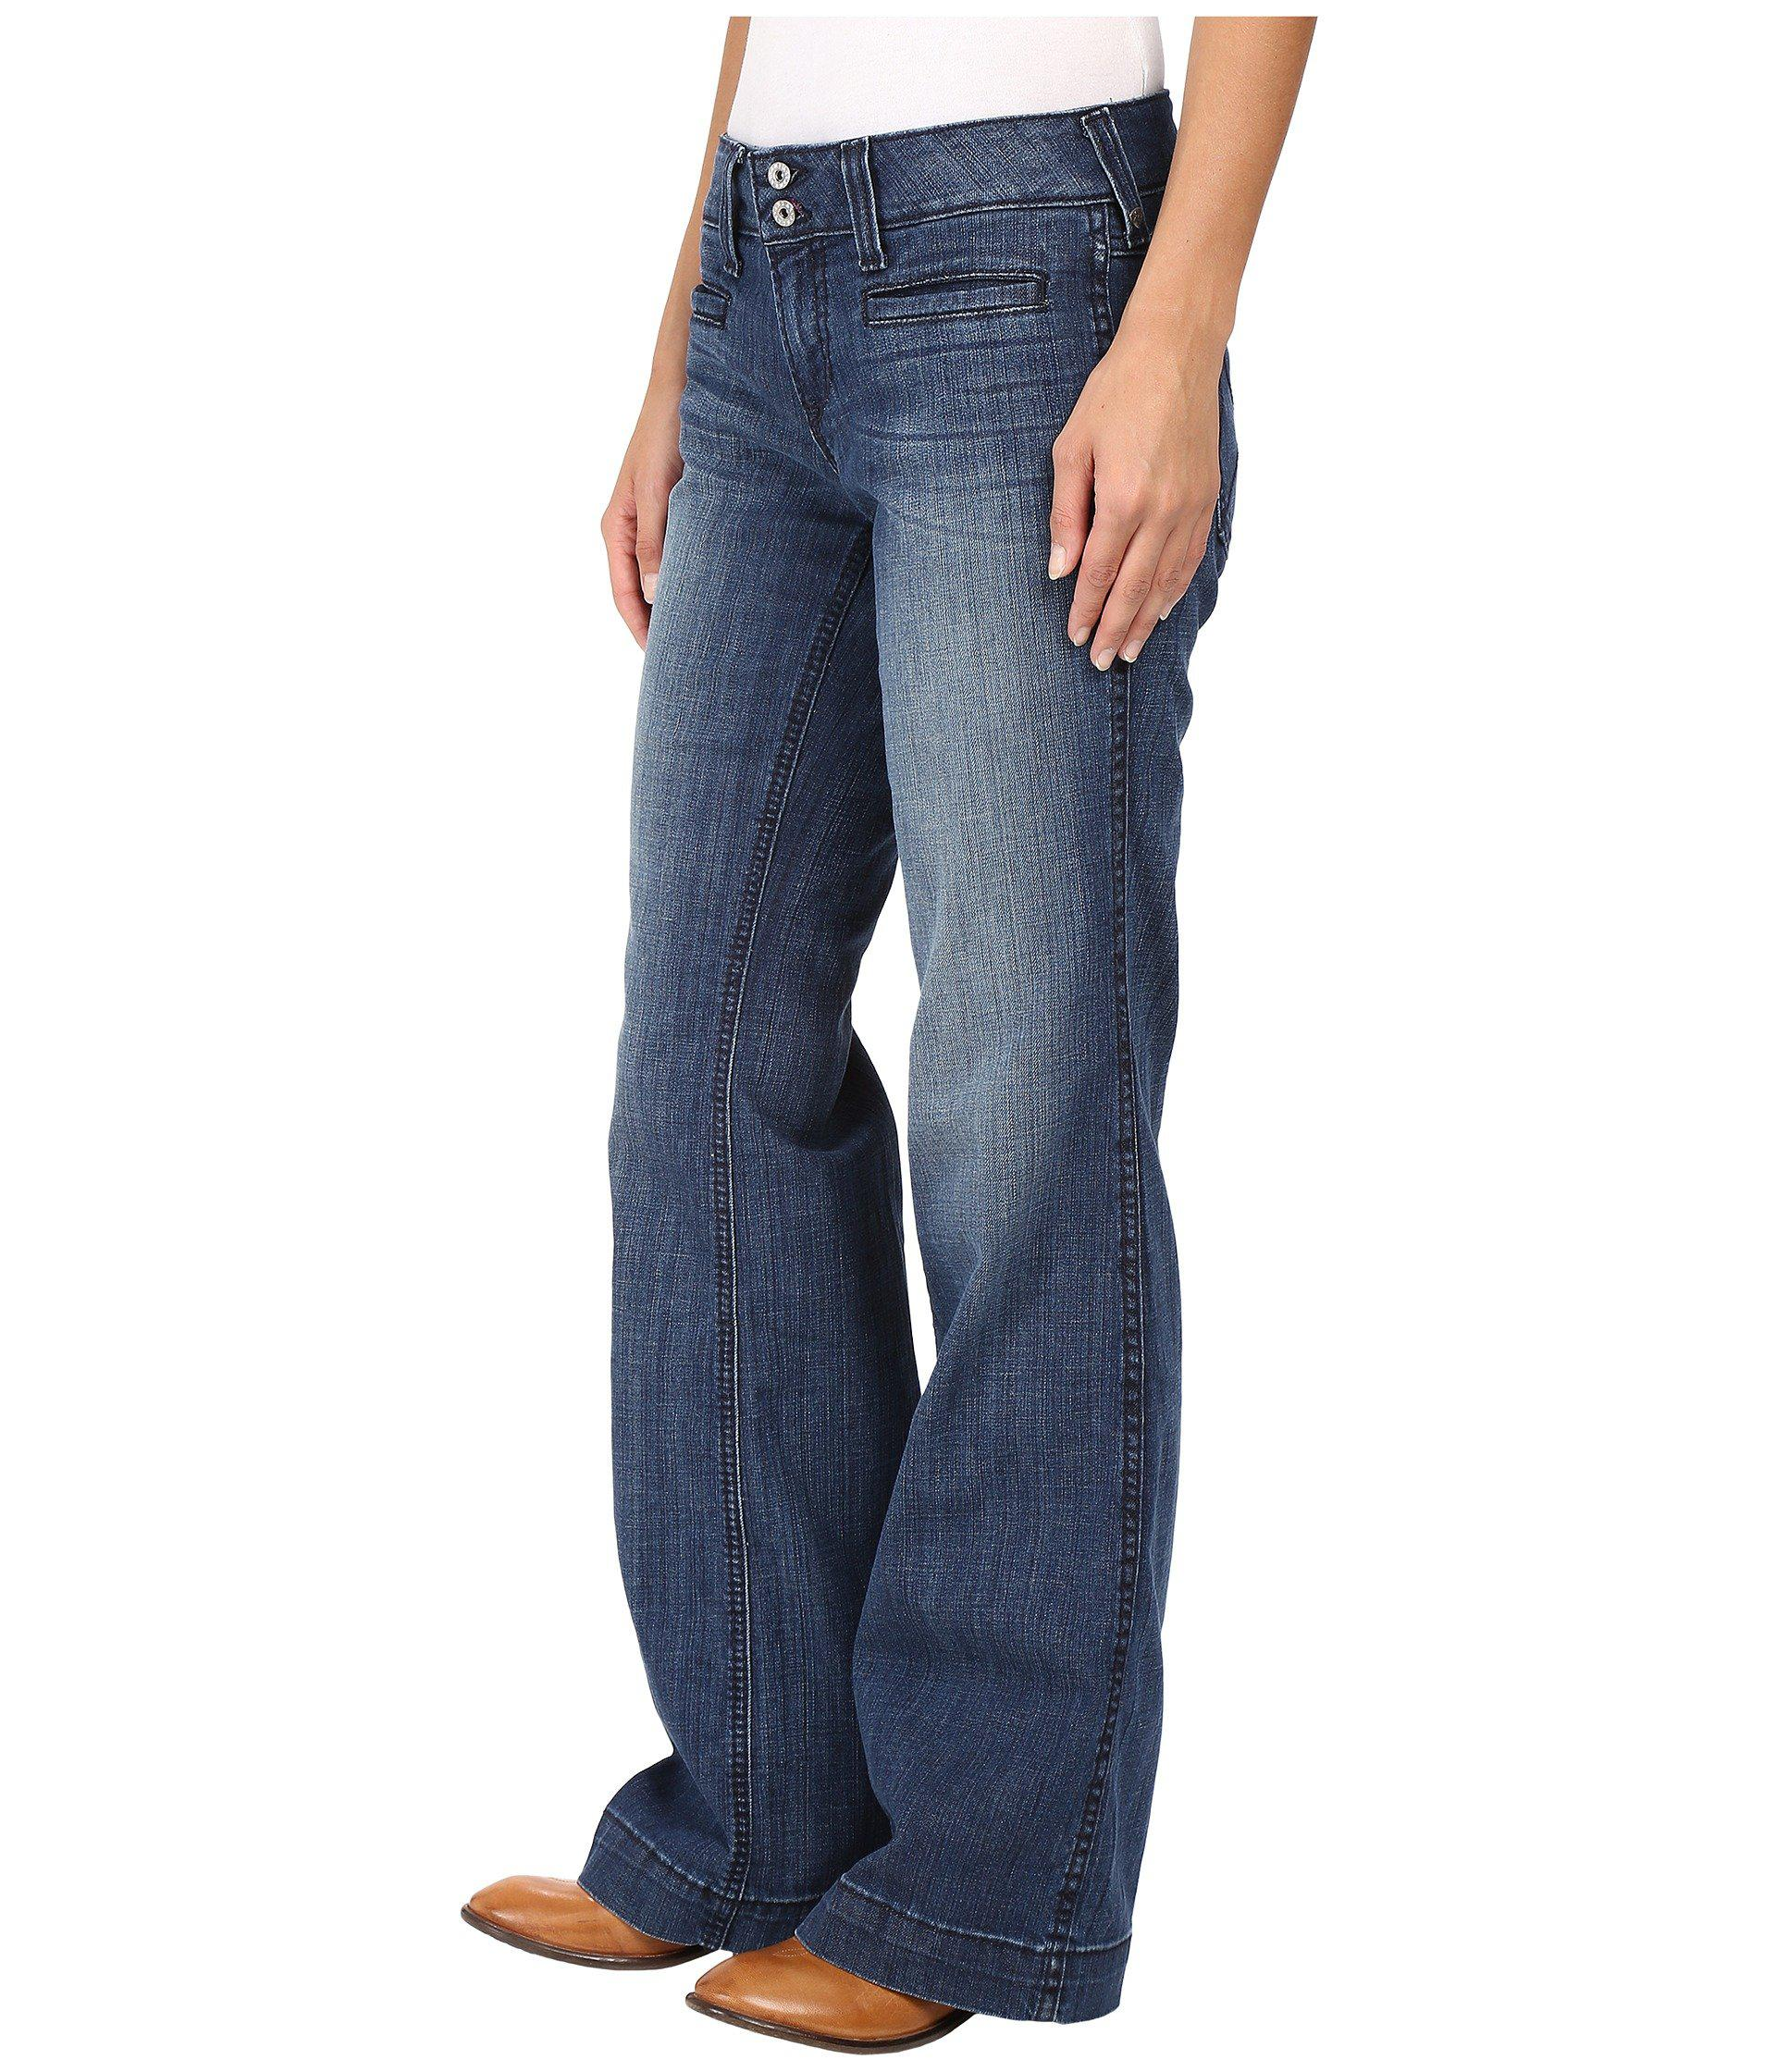 e0273bc7a4fe Ariat Trouser Ella Jeans In Bluebell (bluebell) Women's Jeans in ...